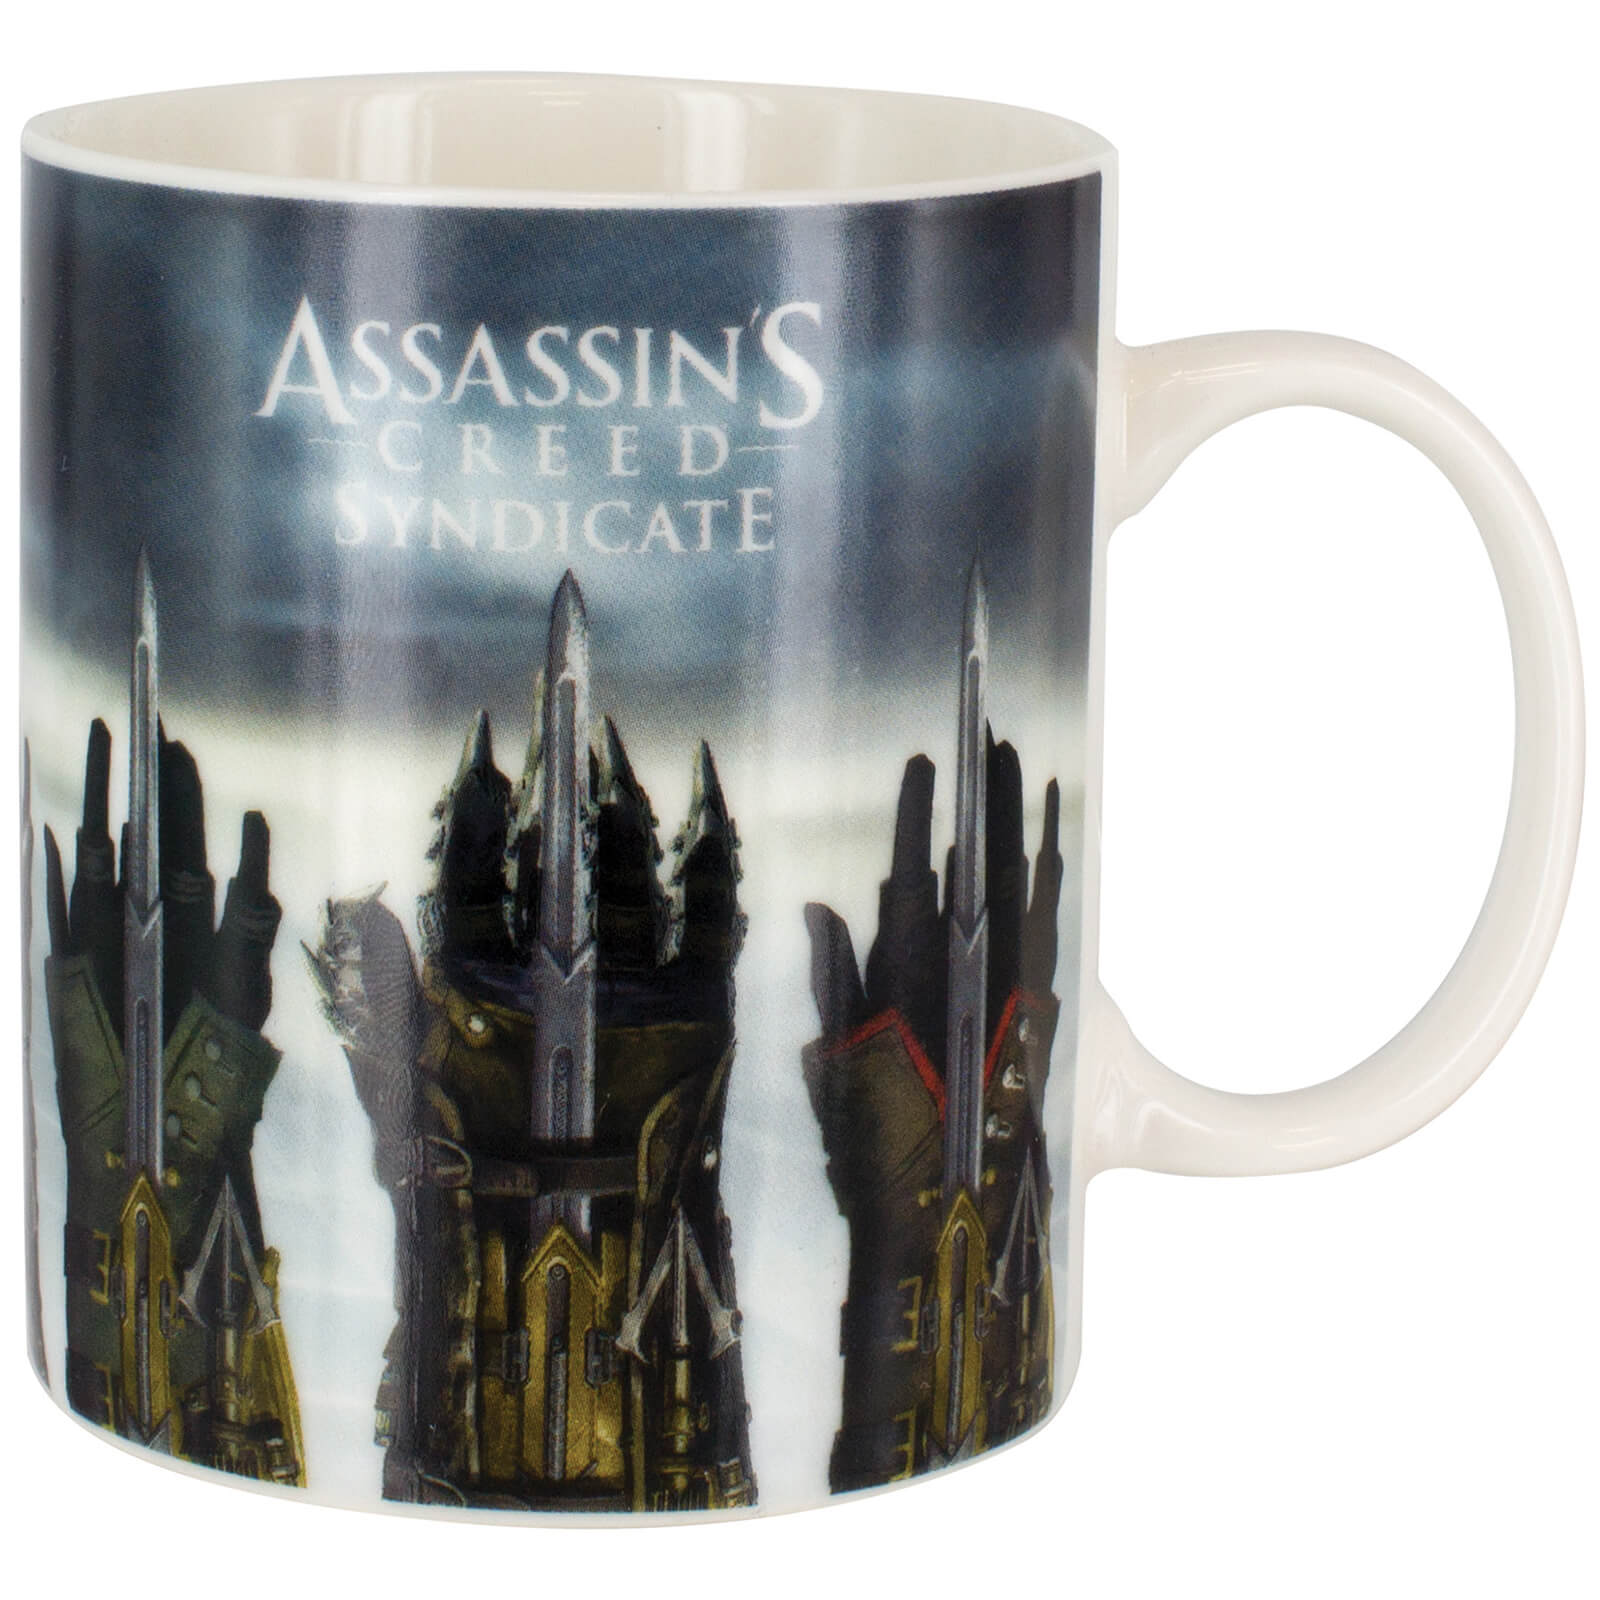 Assassins Creed Gauntlet Mug